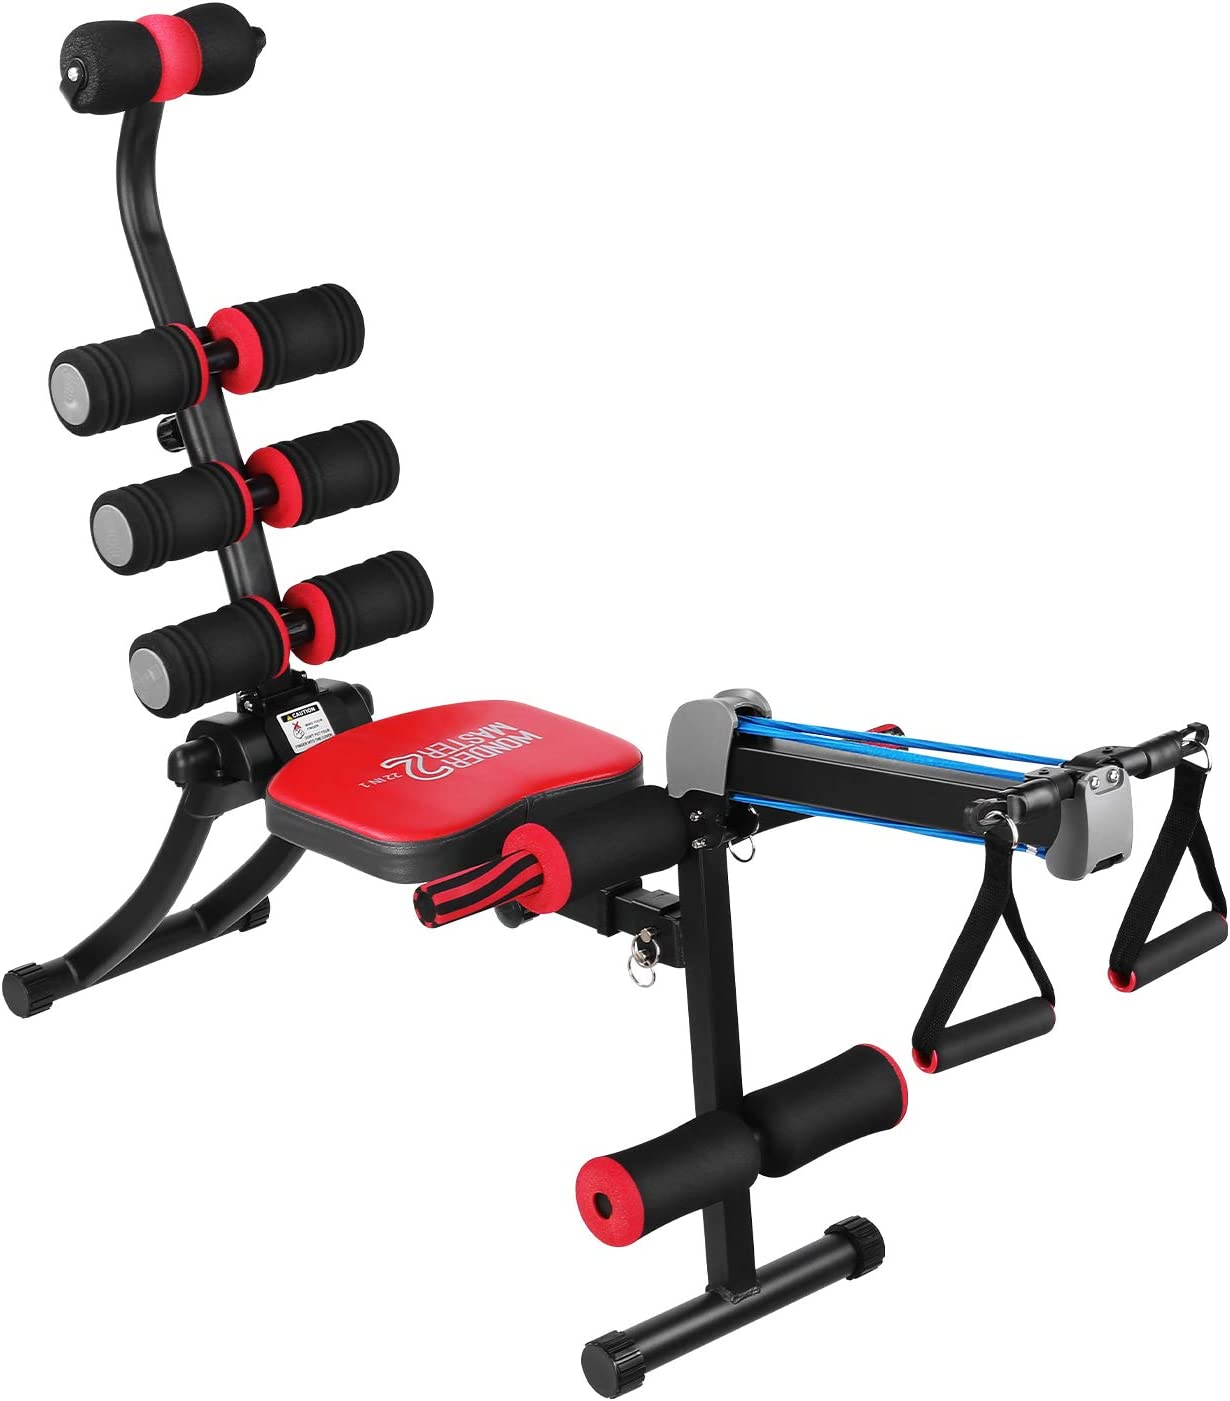 Total Body Gym Machine, Abs & Core Workout Equipment, Twister Exercise Trainer Fitness Equipment at Home with Rowing Machine